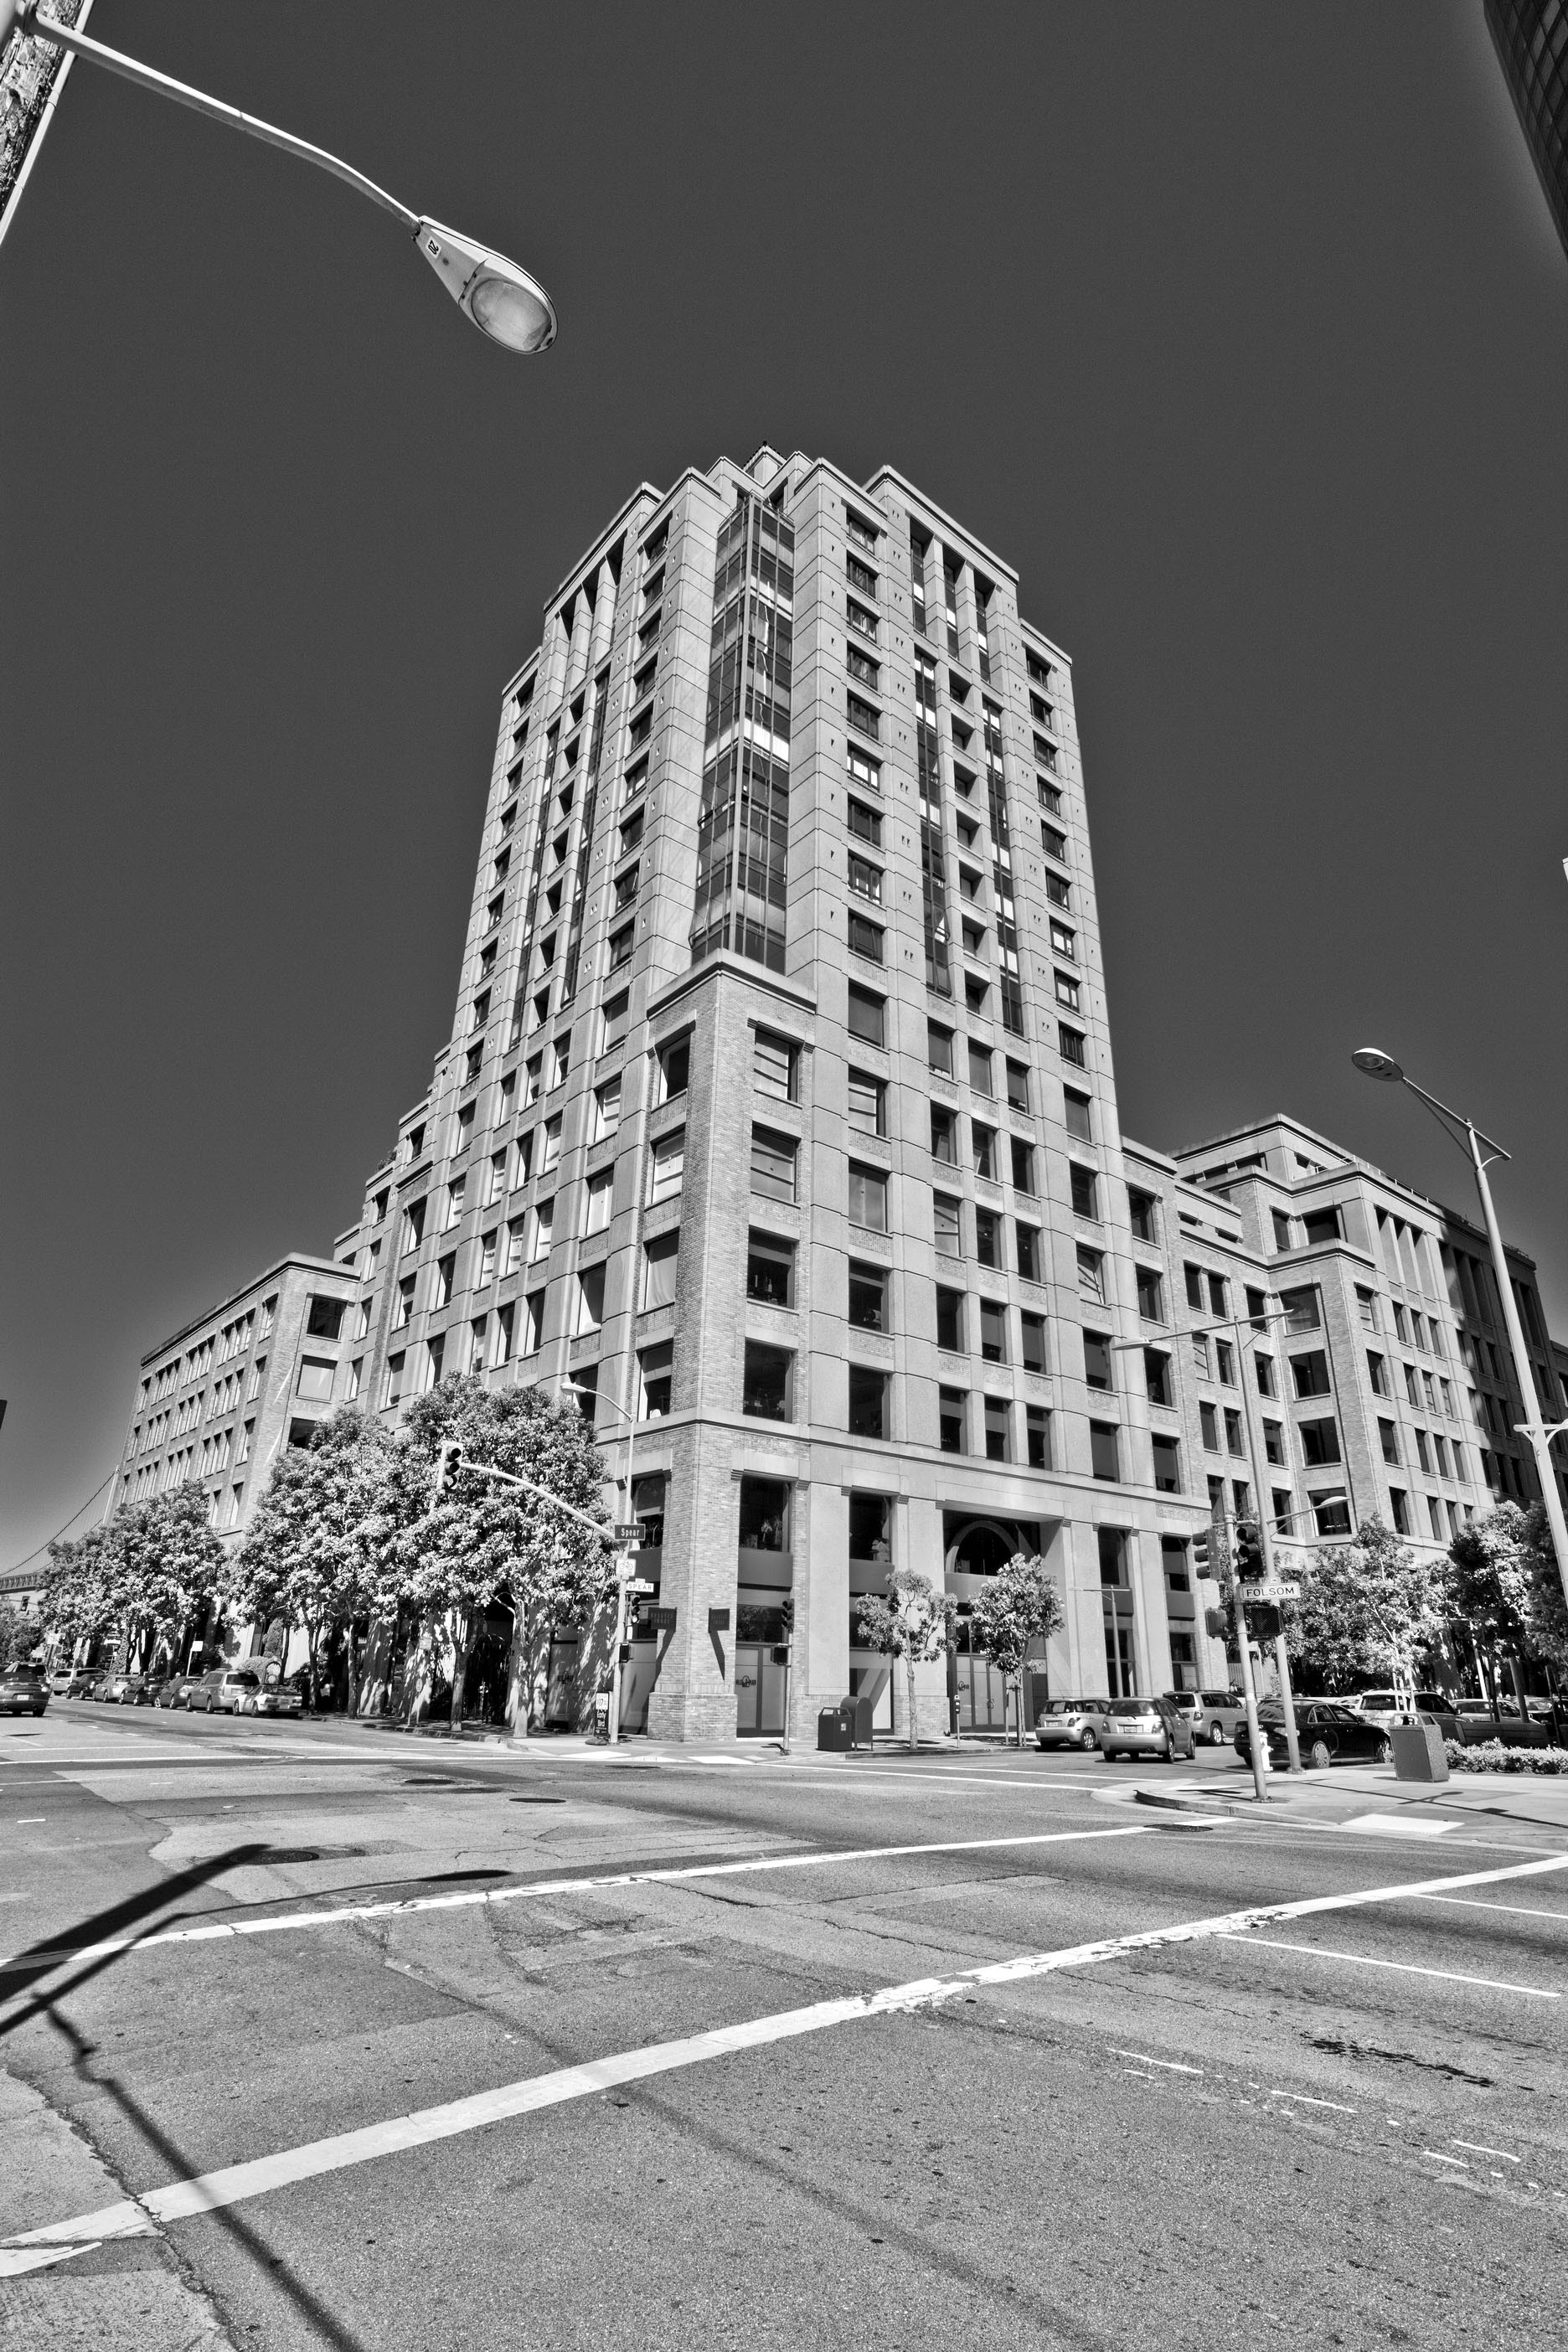 Architecture cnr Spear and Folsom St San Francisco CA July 2011 02